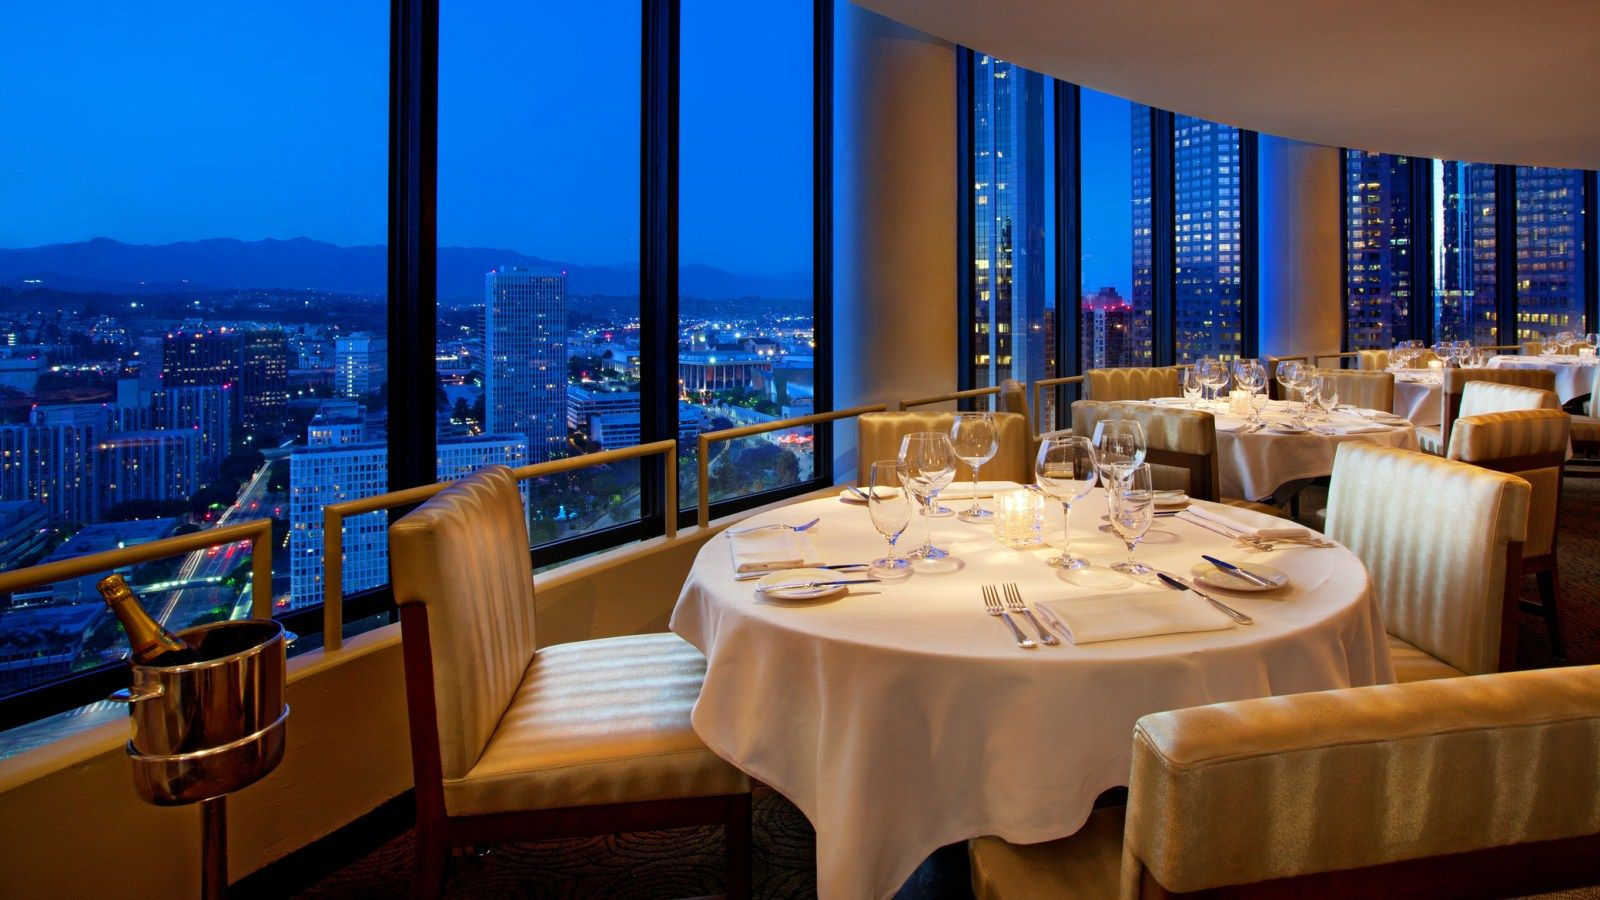 Best Downtown La Restaurants